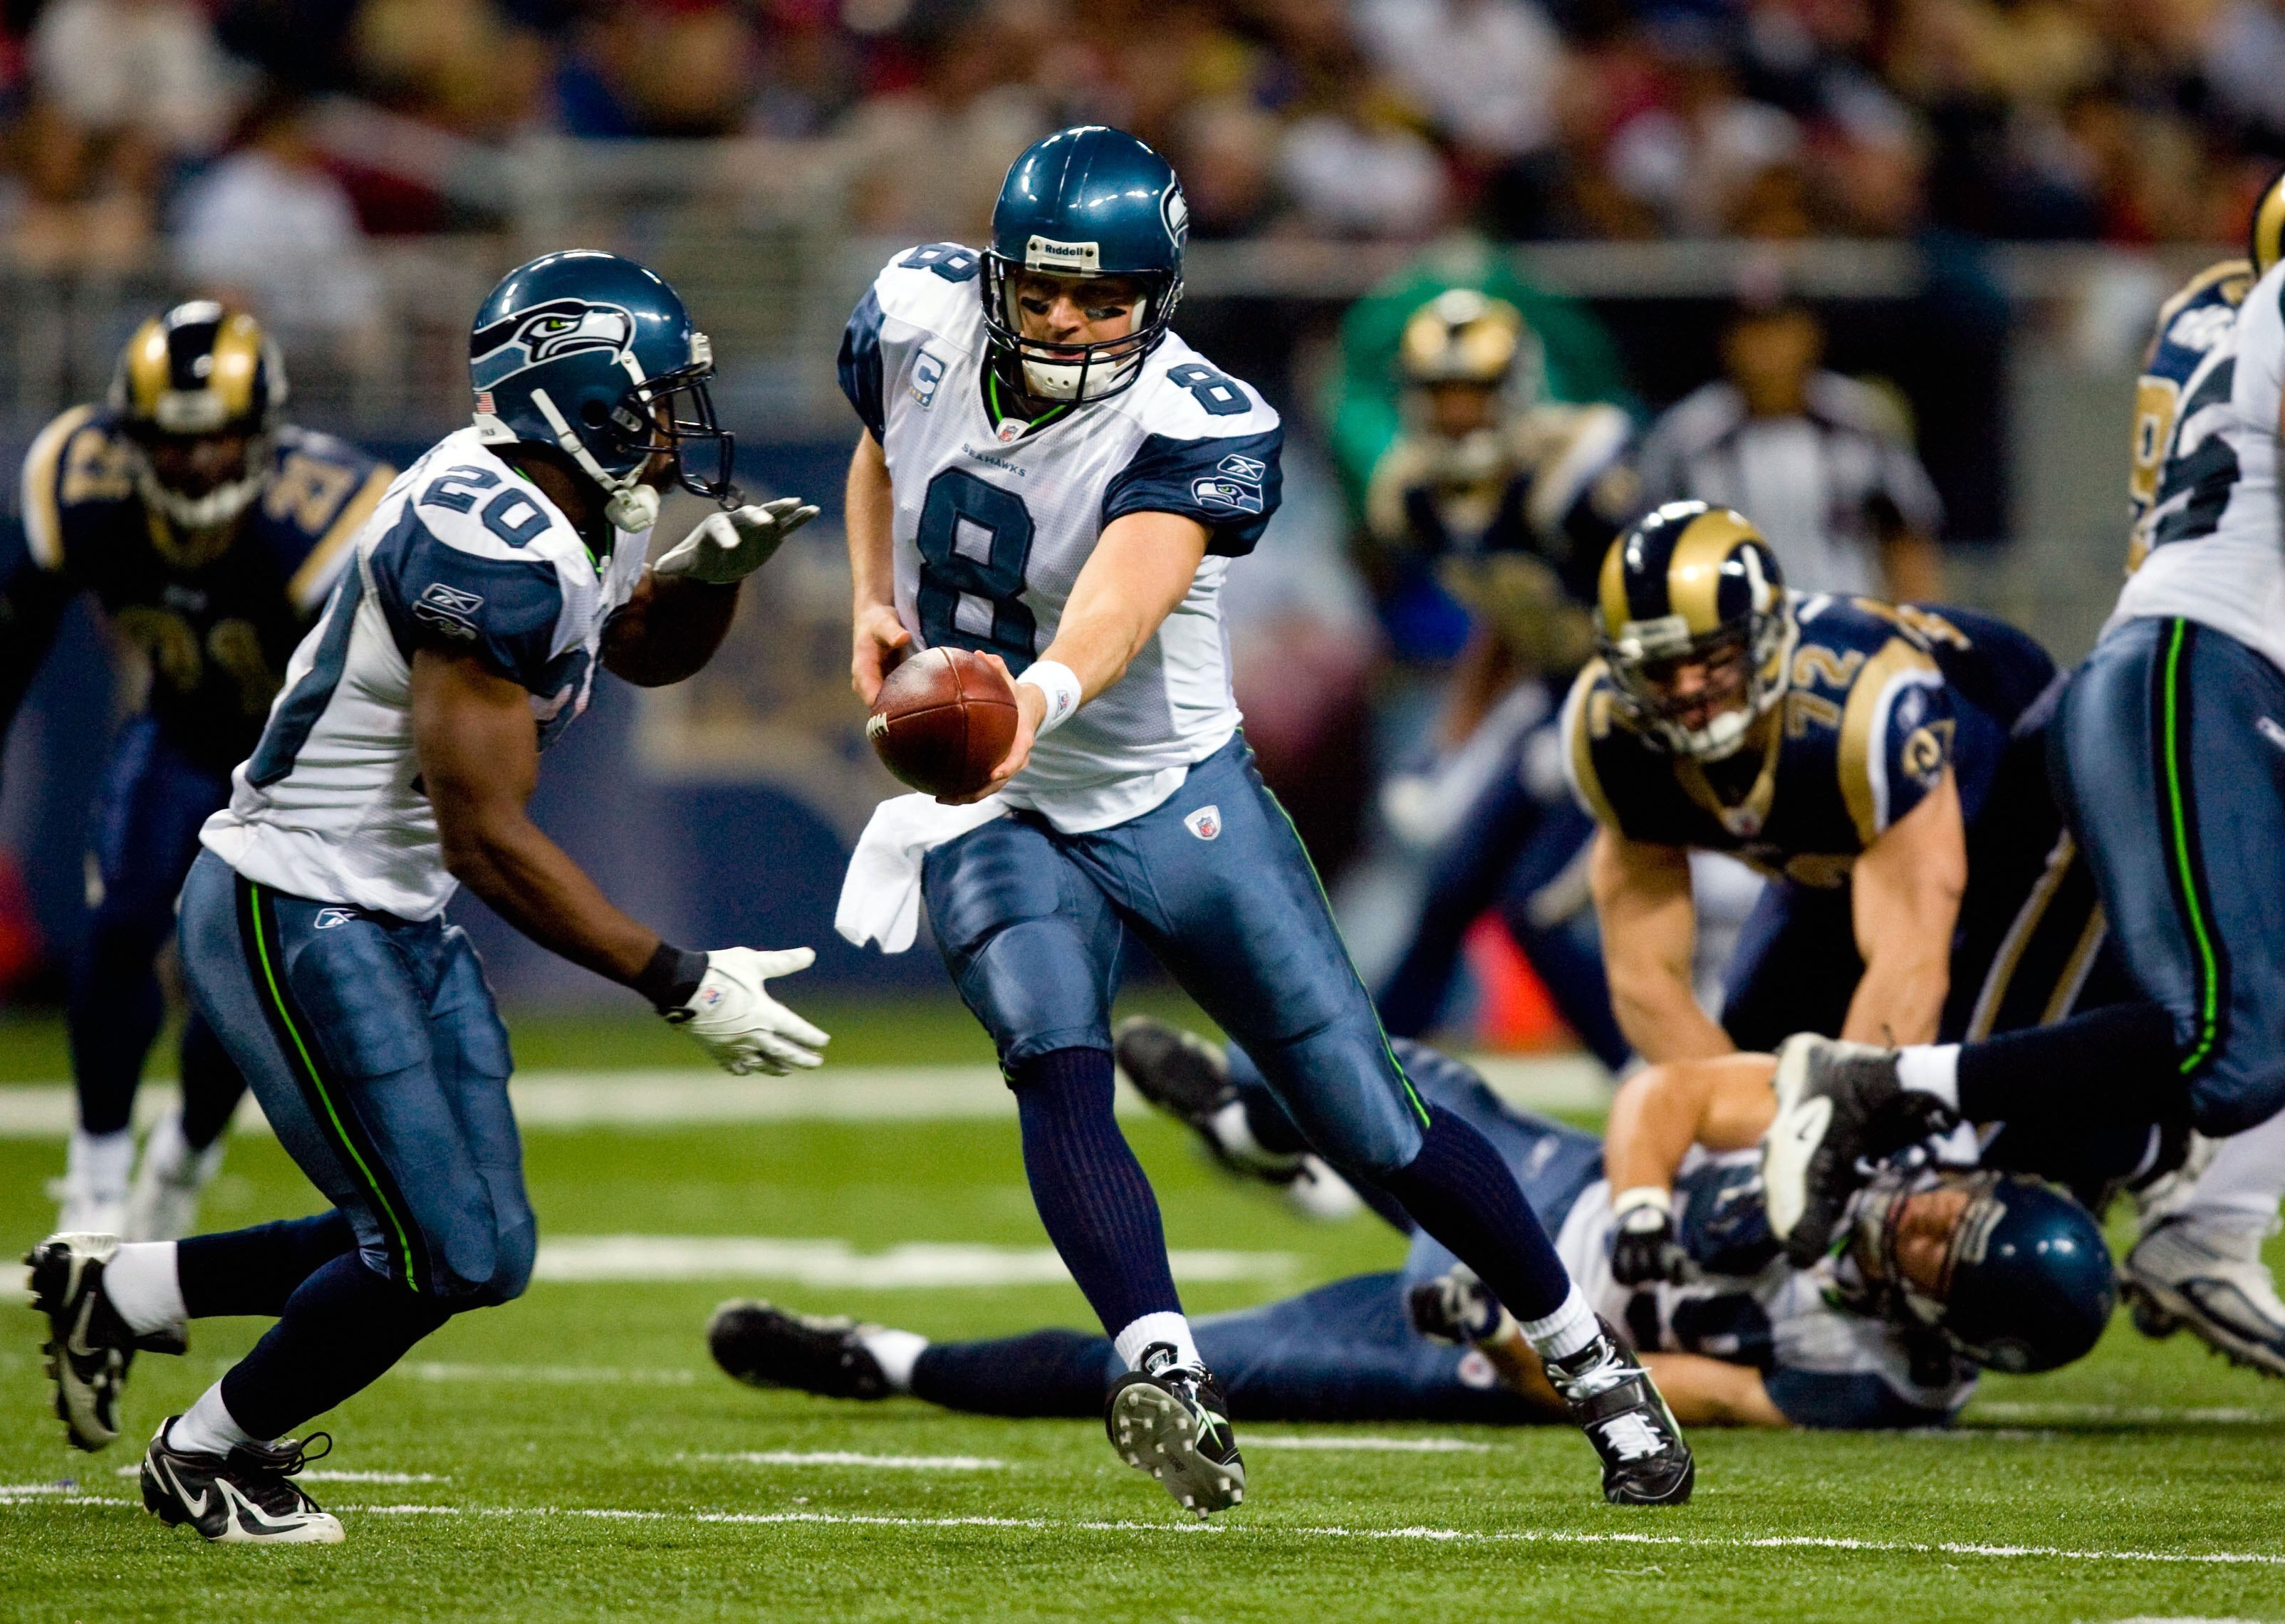 ST. LOUIS - NOVEMBER 29:  Quarterback Matt Hasselbeck #8 of the Seattle Seahawks looks to hand off the ball to Justin Forsett #20 during their NFL game against the St. Louis Rams at Edward Jones Dome on November 29, 2009 in St. Louis, Missouri. The Seahaw